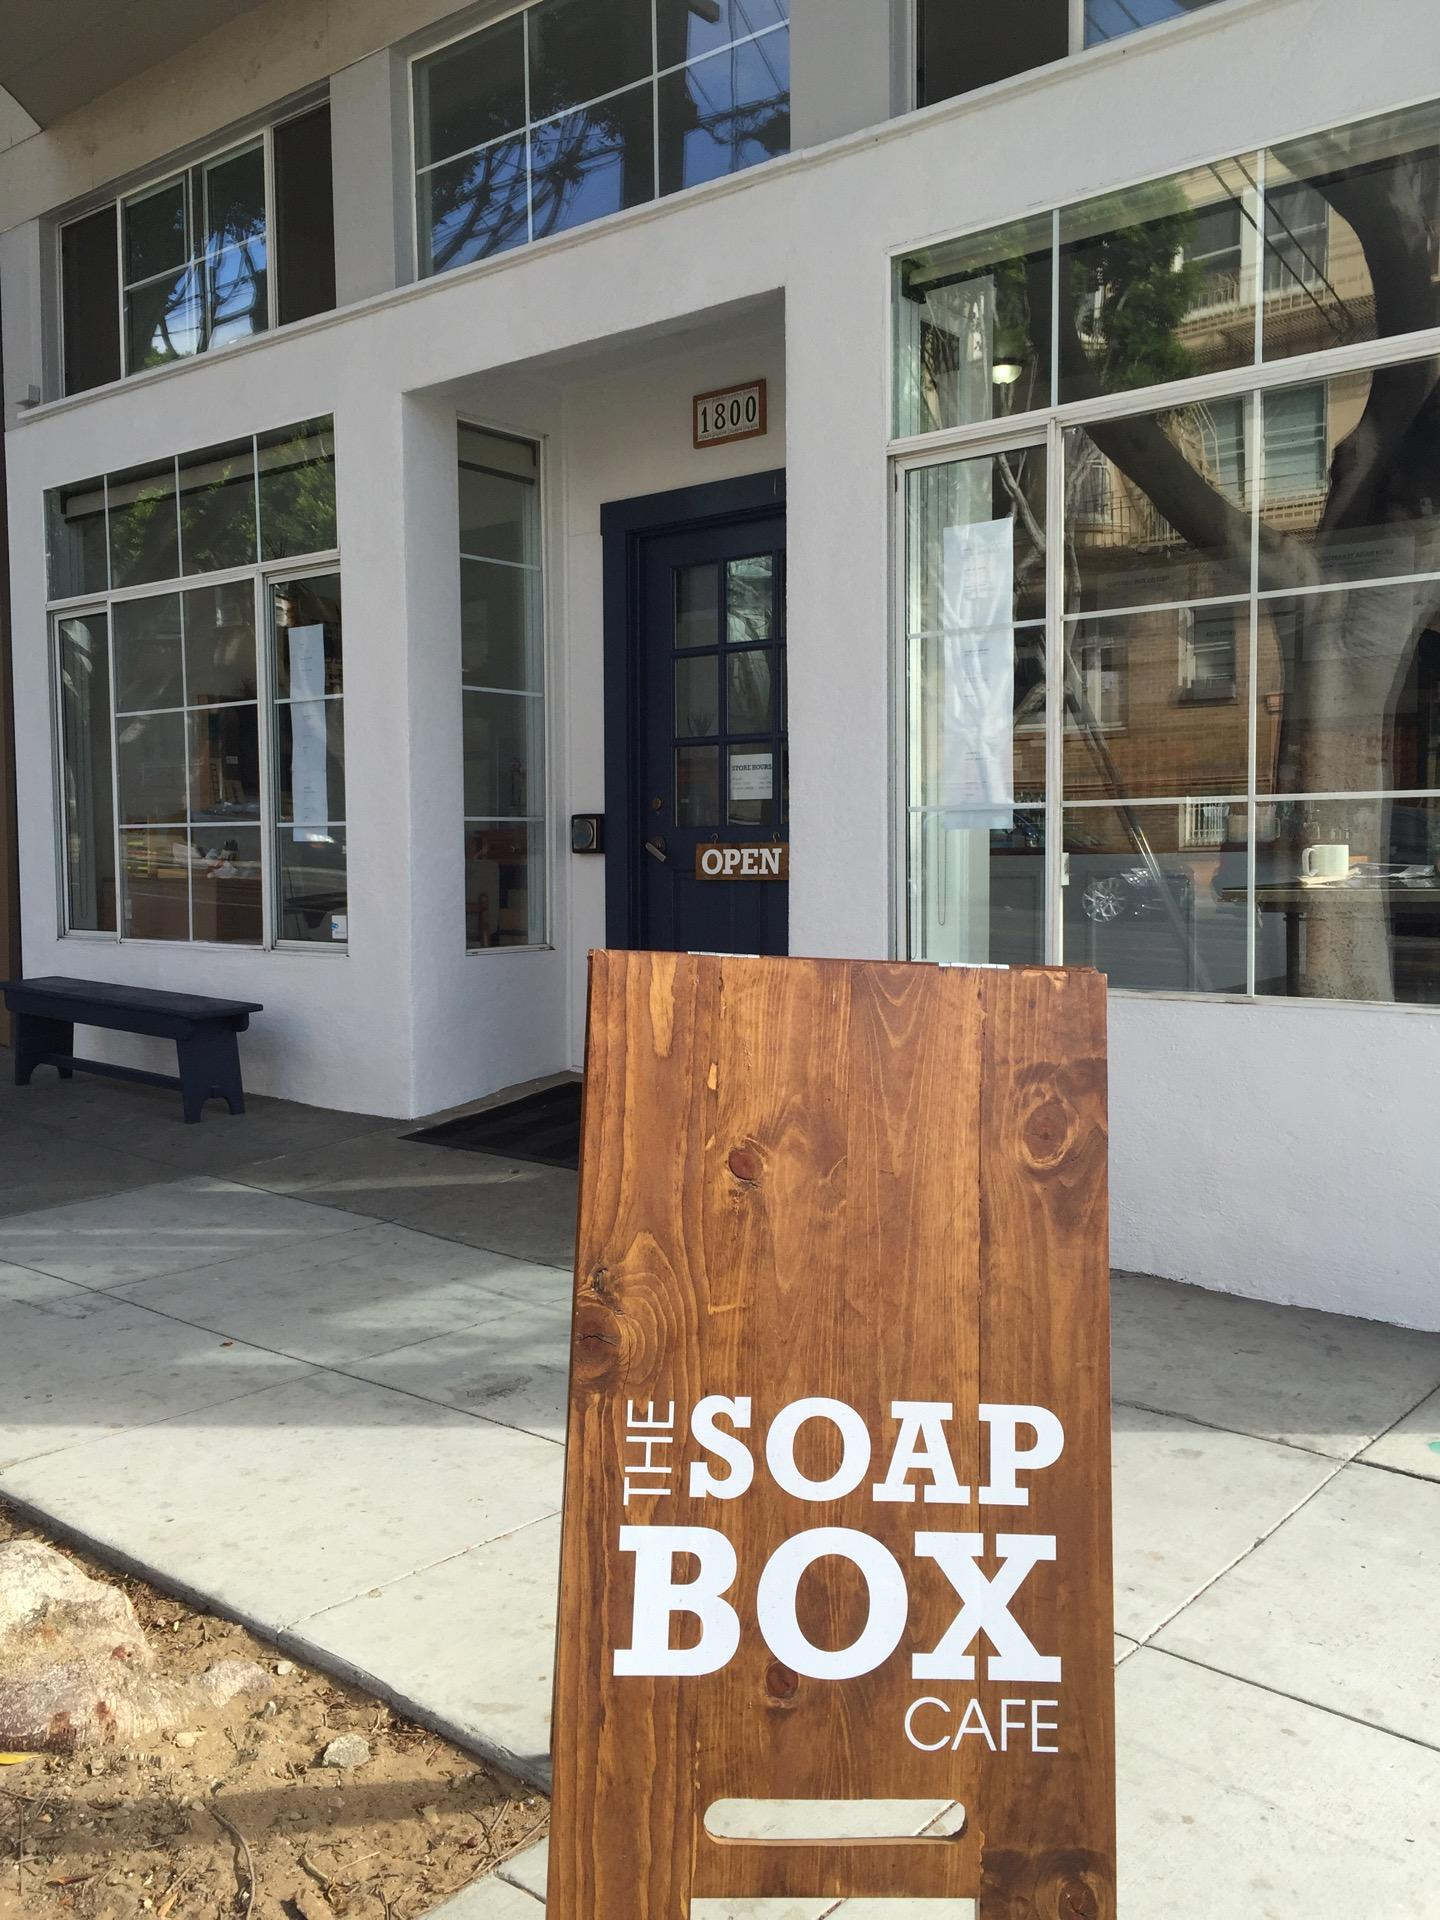 Reasons to eat out in San Francisco - The Soap Box Cafe